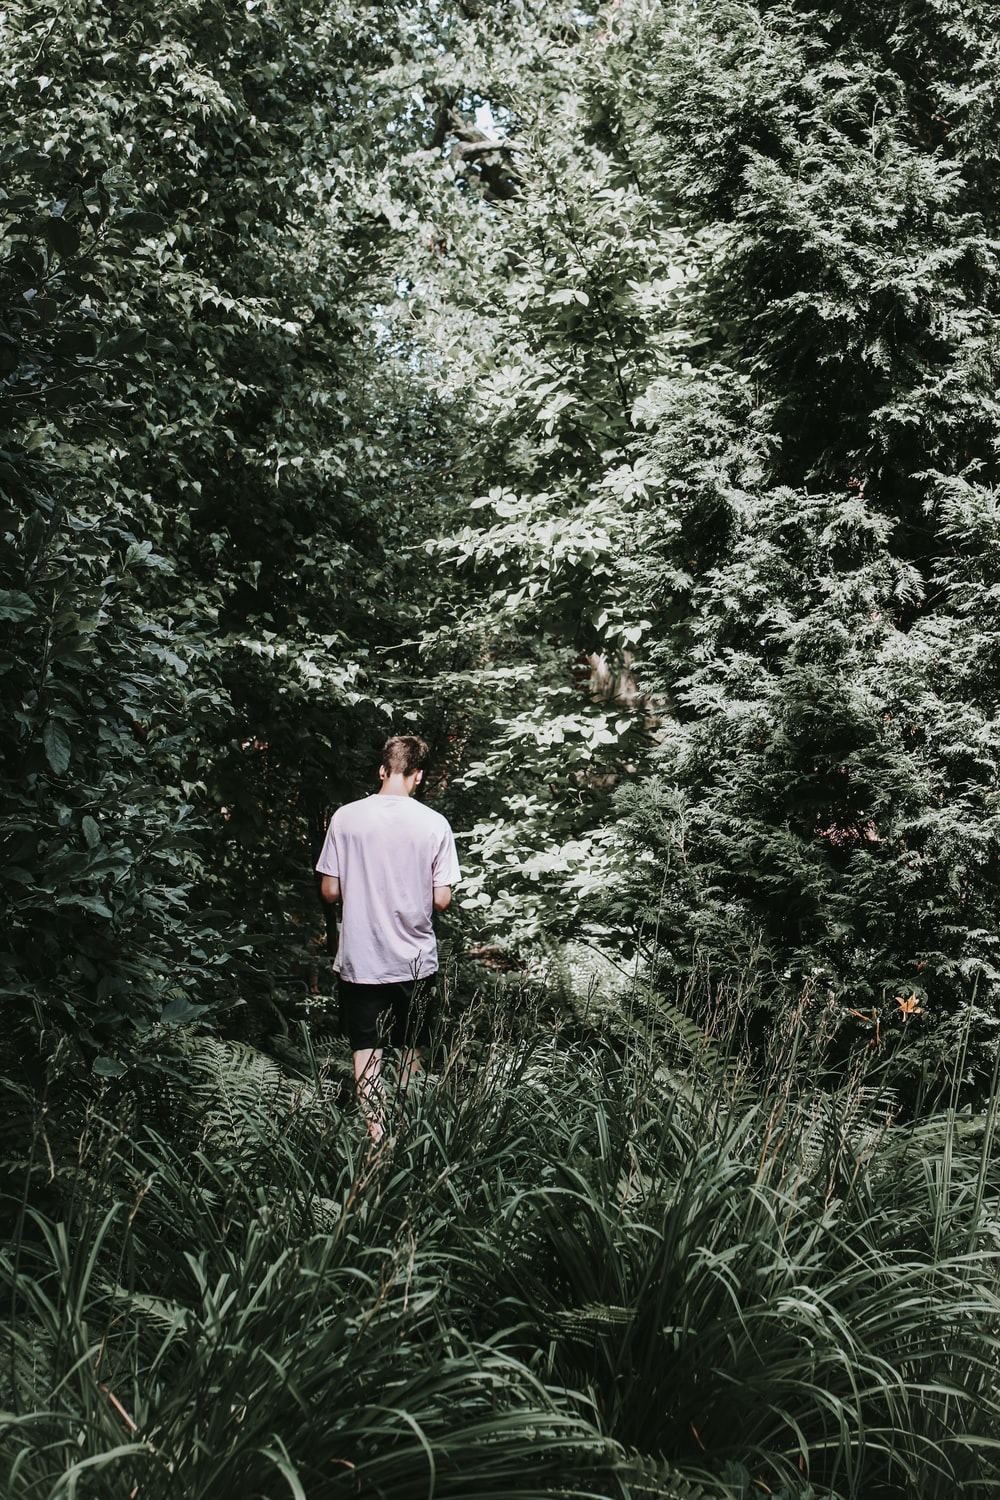 man wearing white shirt in forest